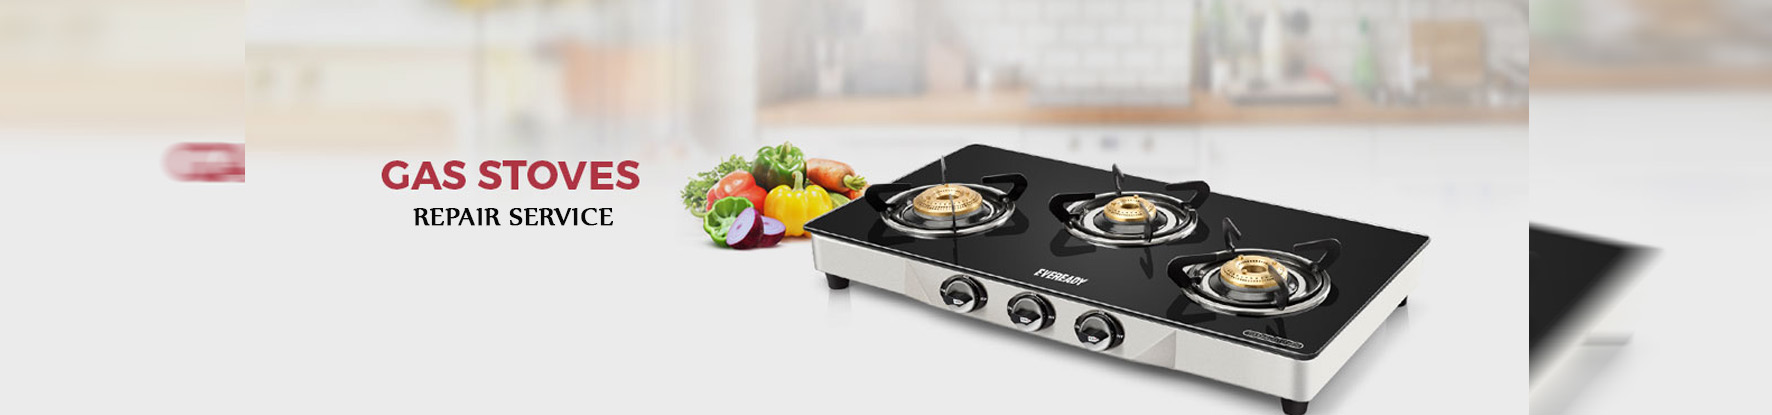 hindware gas stove toll free